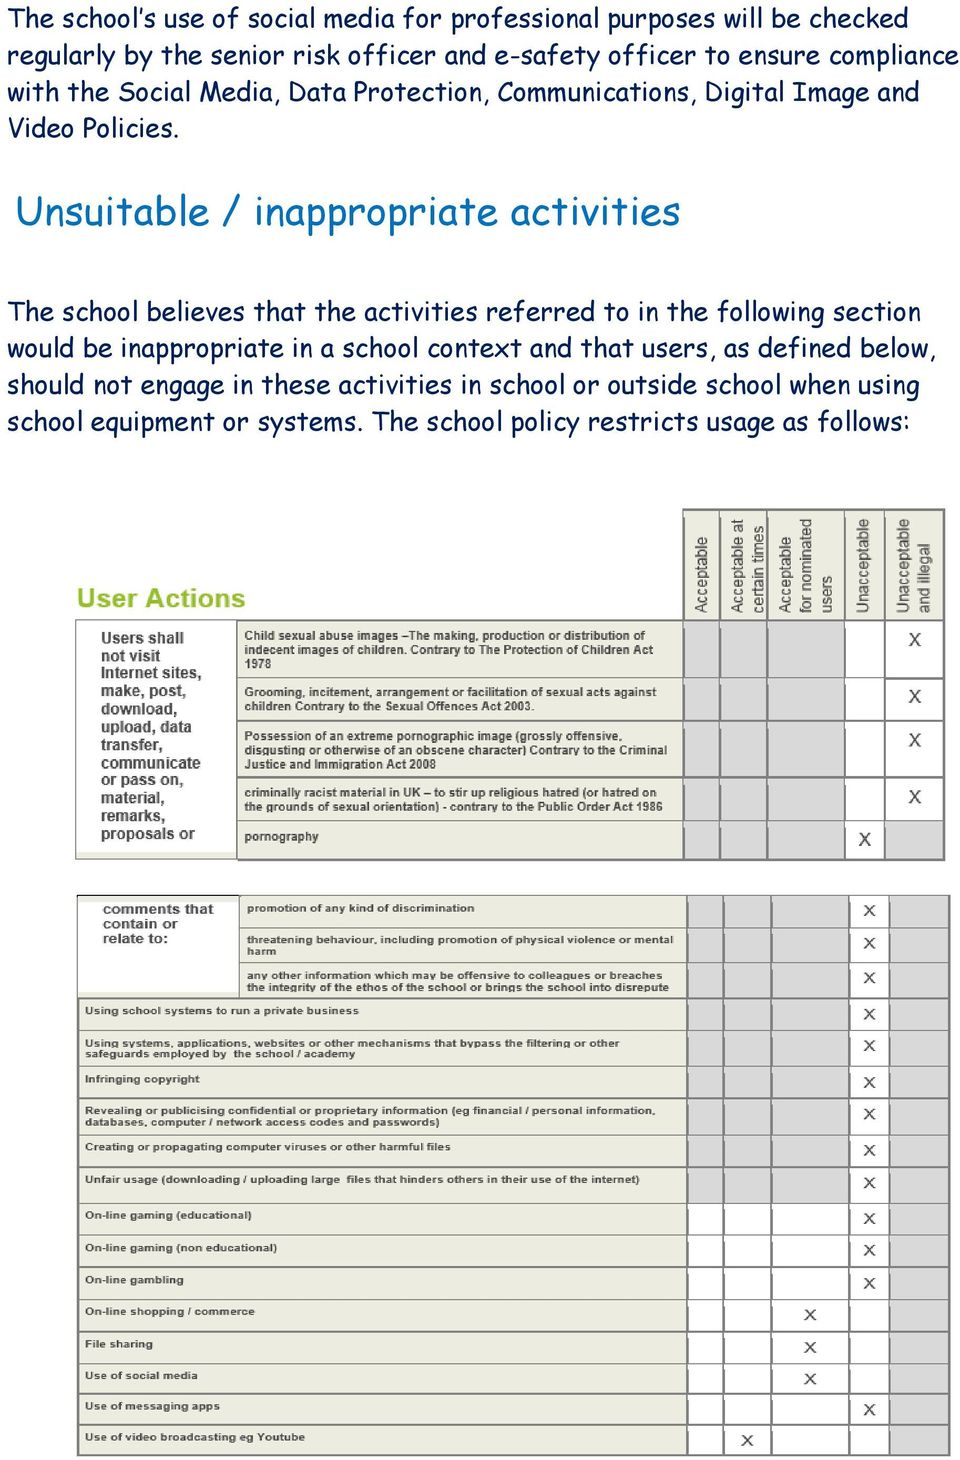 Unsuitable / inappropriate activities The school believes that the activities referred to in the following section would be inappropriate in a